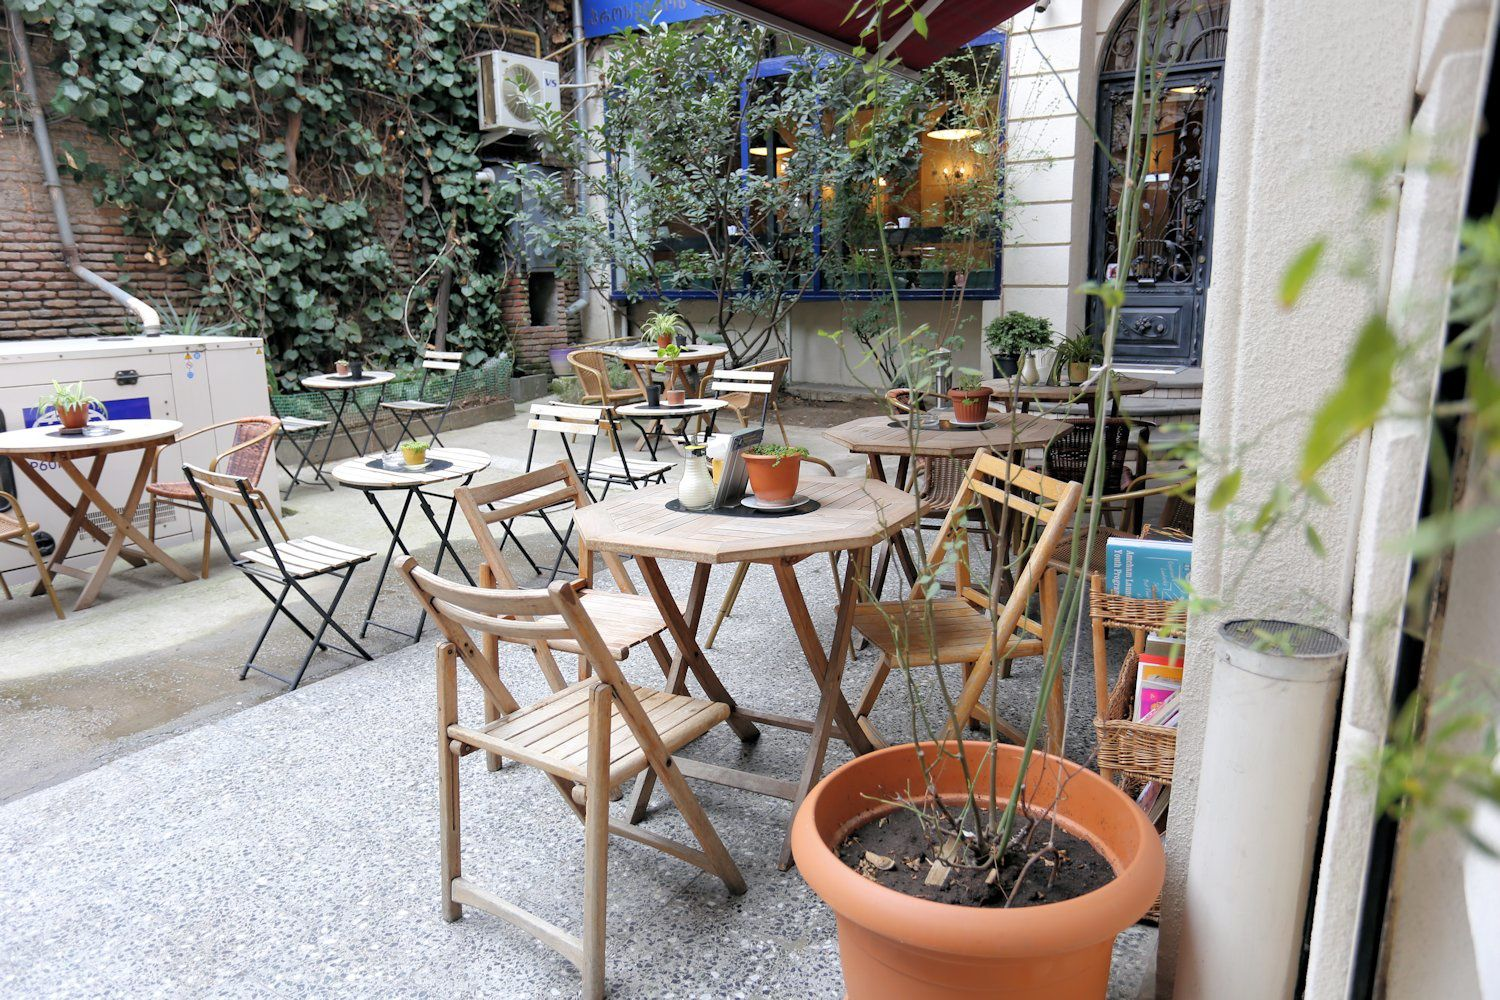 Caliban's Coffee Shop summer terrace